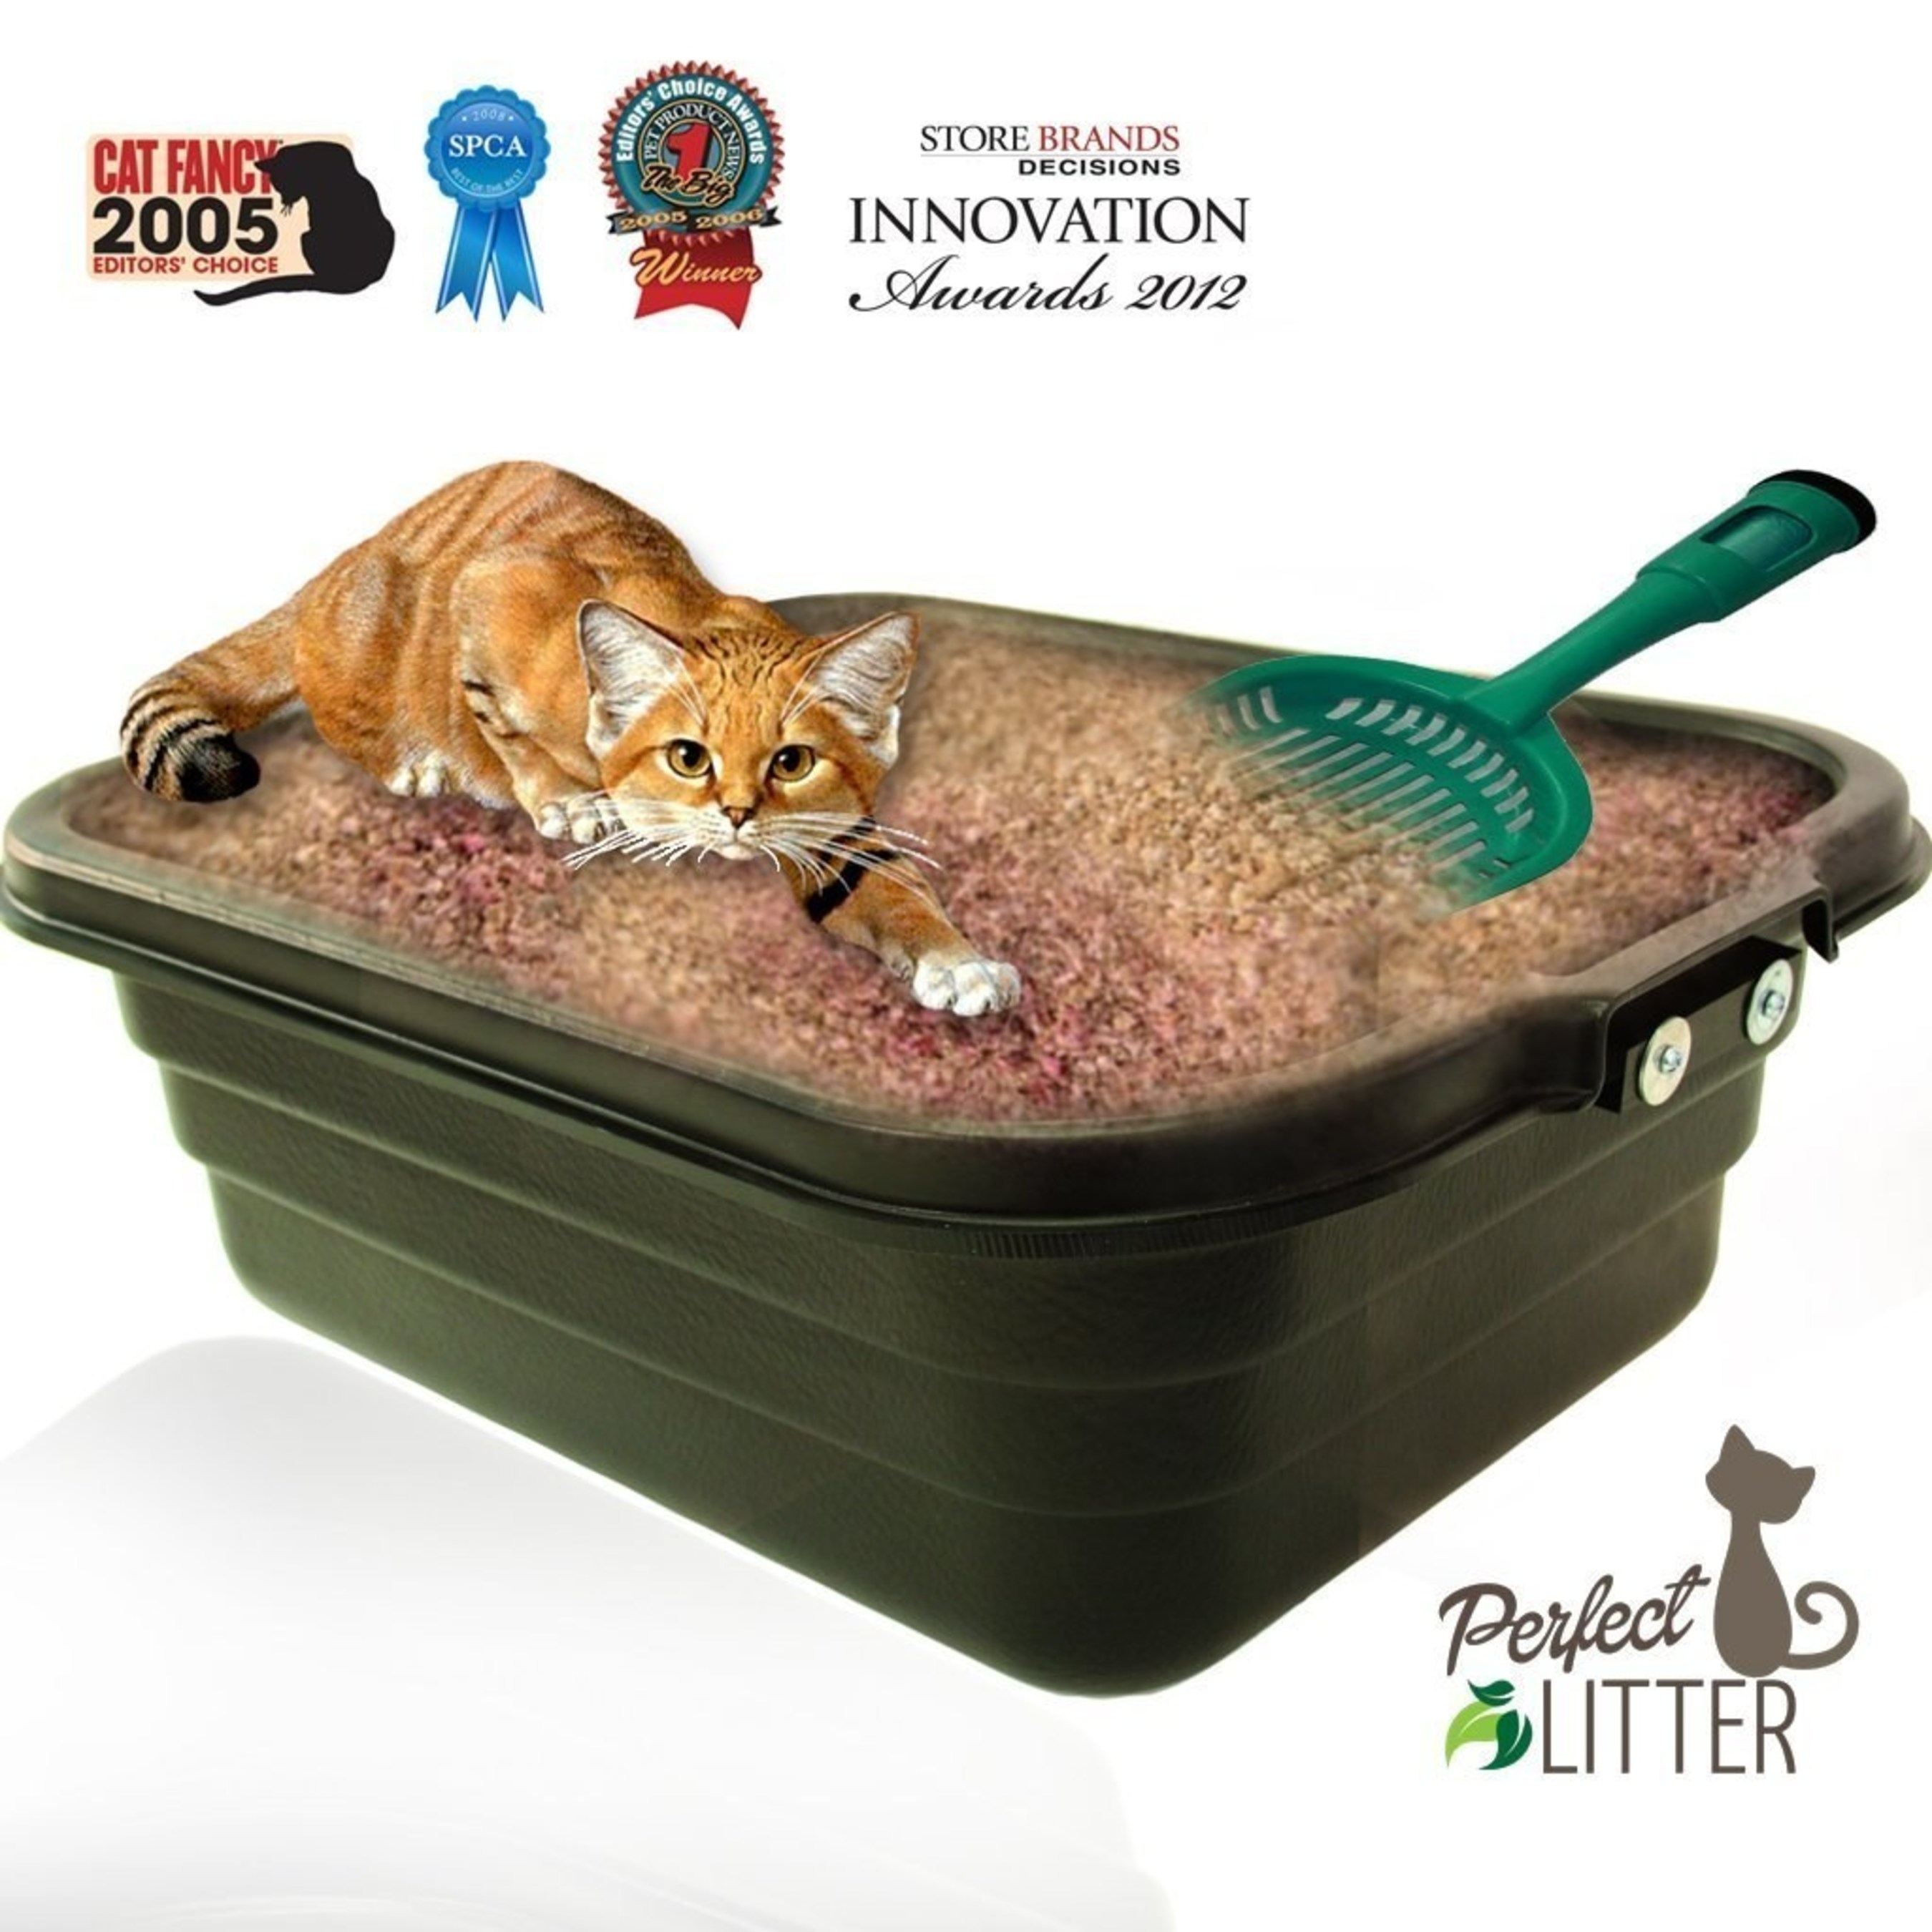 Perfect Litter Launches The 30 Day Free Trial For Their